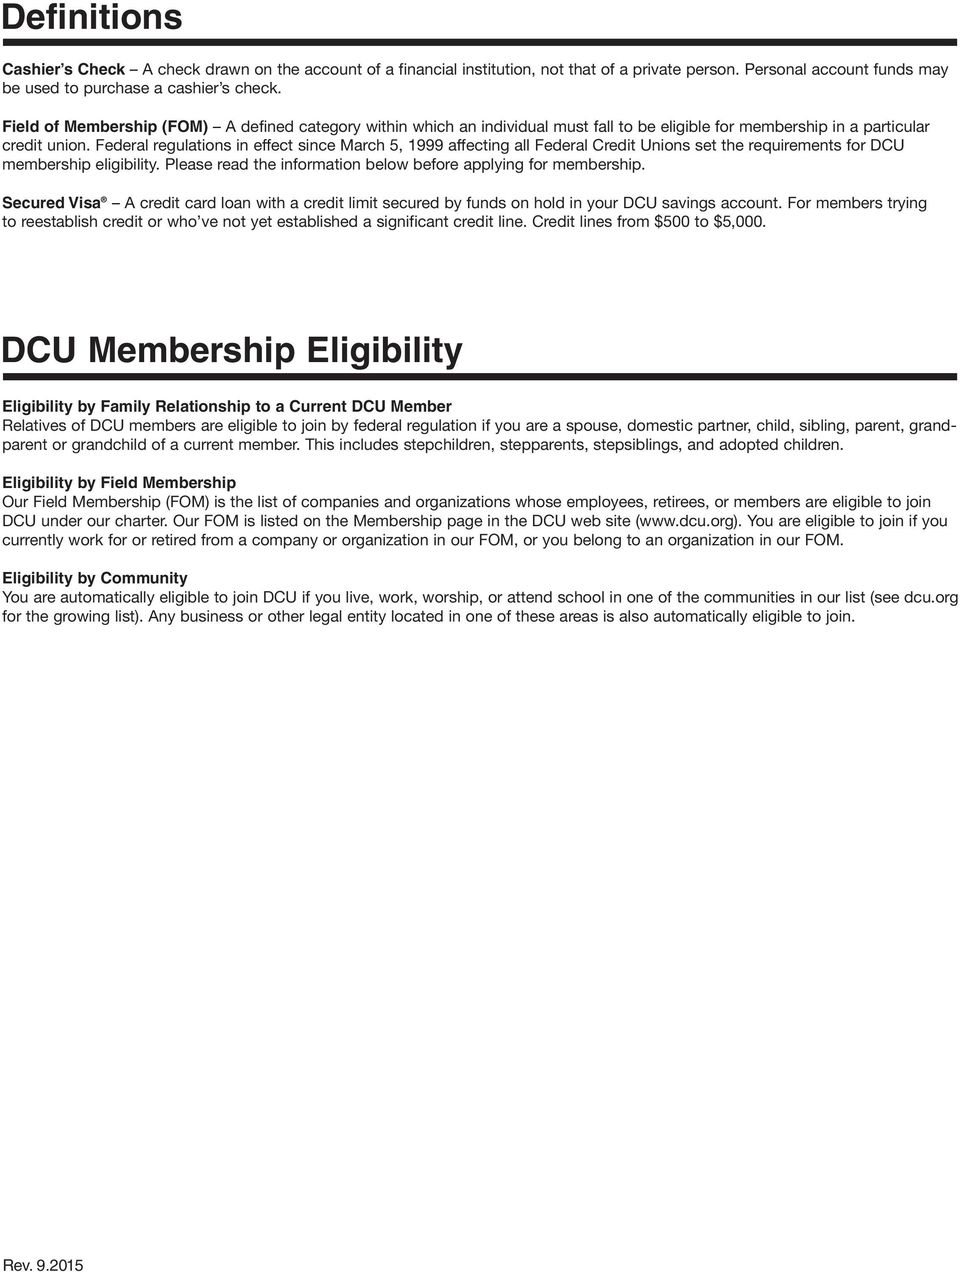 Federal regulations in effect since March 5, 1999 affecting all Federal Credit Unions set the requirements for DCU membership eligibility.